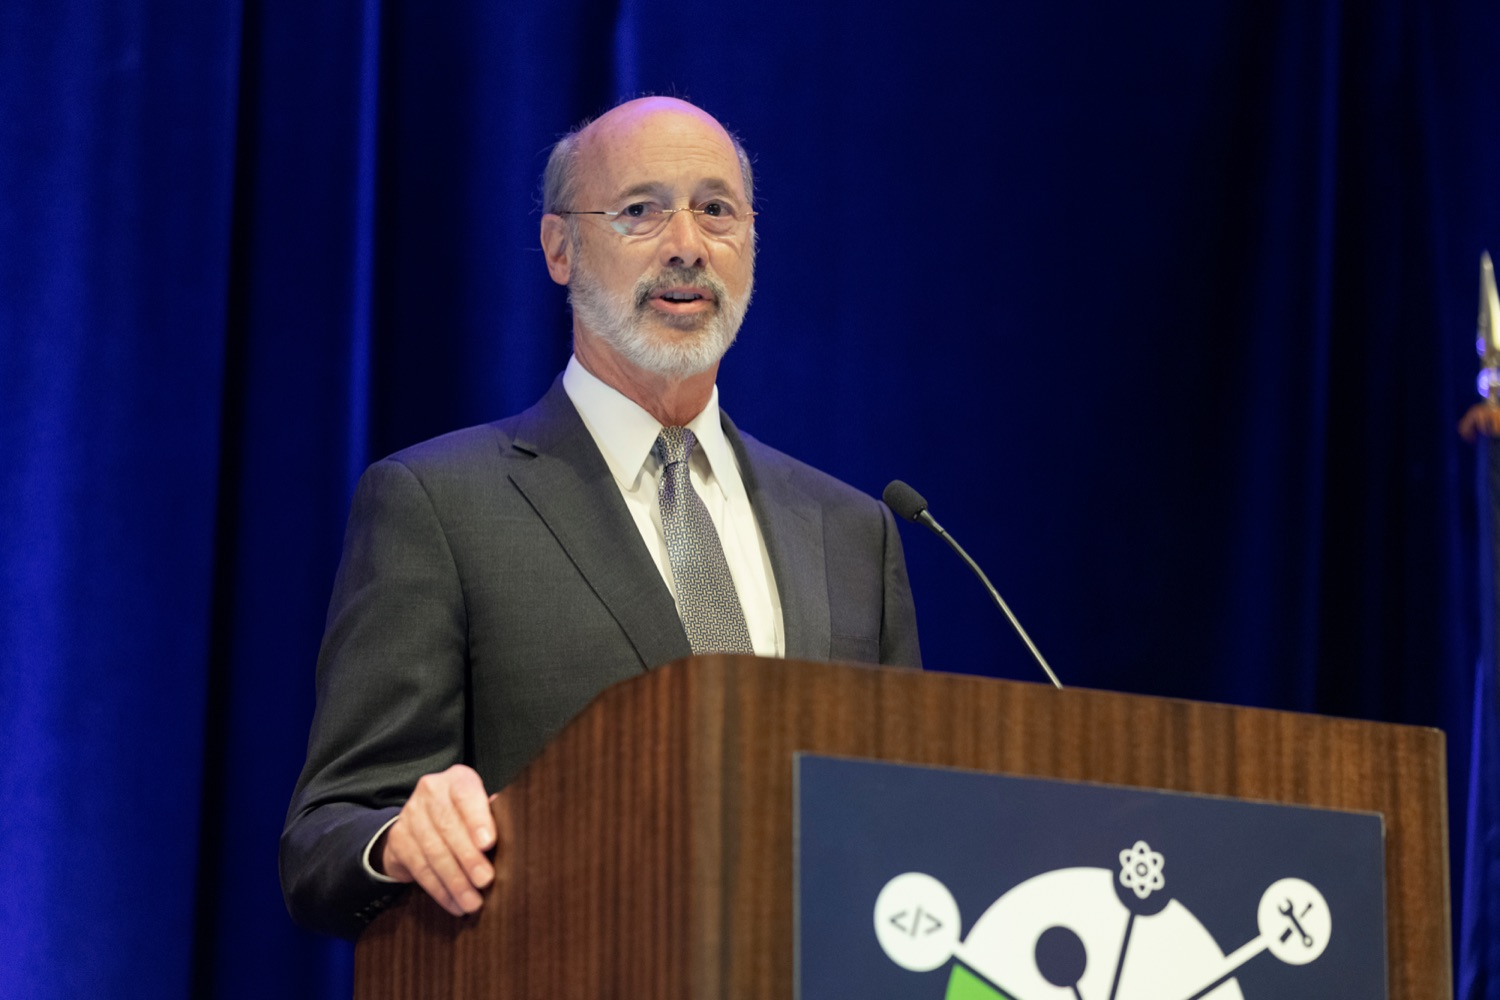 """<a href=""""http://filesource.abacast.com/commonwealthofpa/photo/17520_LandI_Apprenticeships_NK_011.JPG"""" target=""""_blank"""">⇣Download Photo<br></a>Pennsylvania Governor Tom Wolf speaks during the 2019 Pennsylvania Apprenticeship Summit at Hershey Lodge on Thursday, October 31, 2019."""